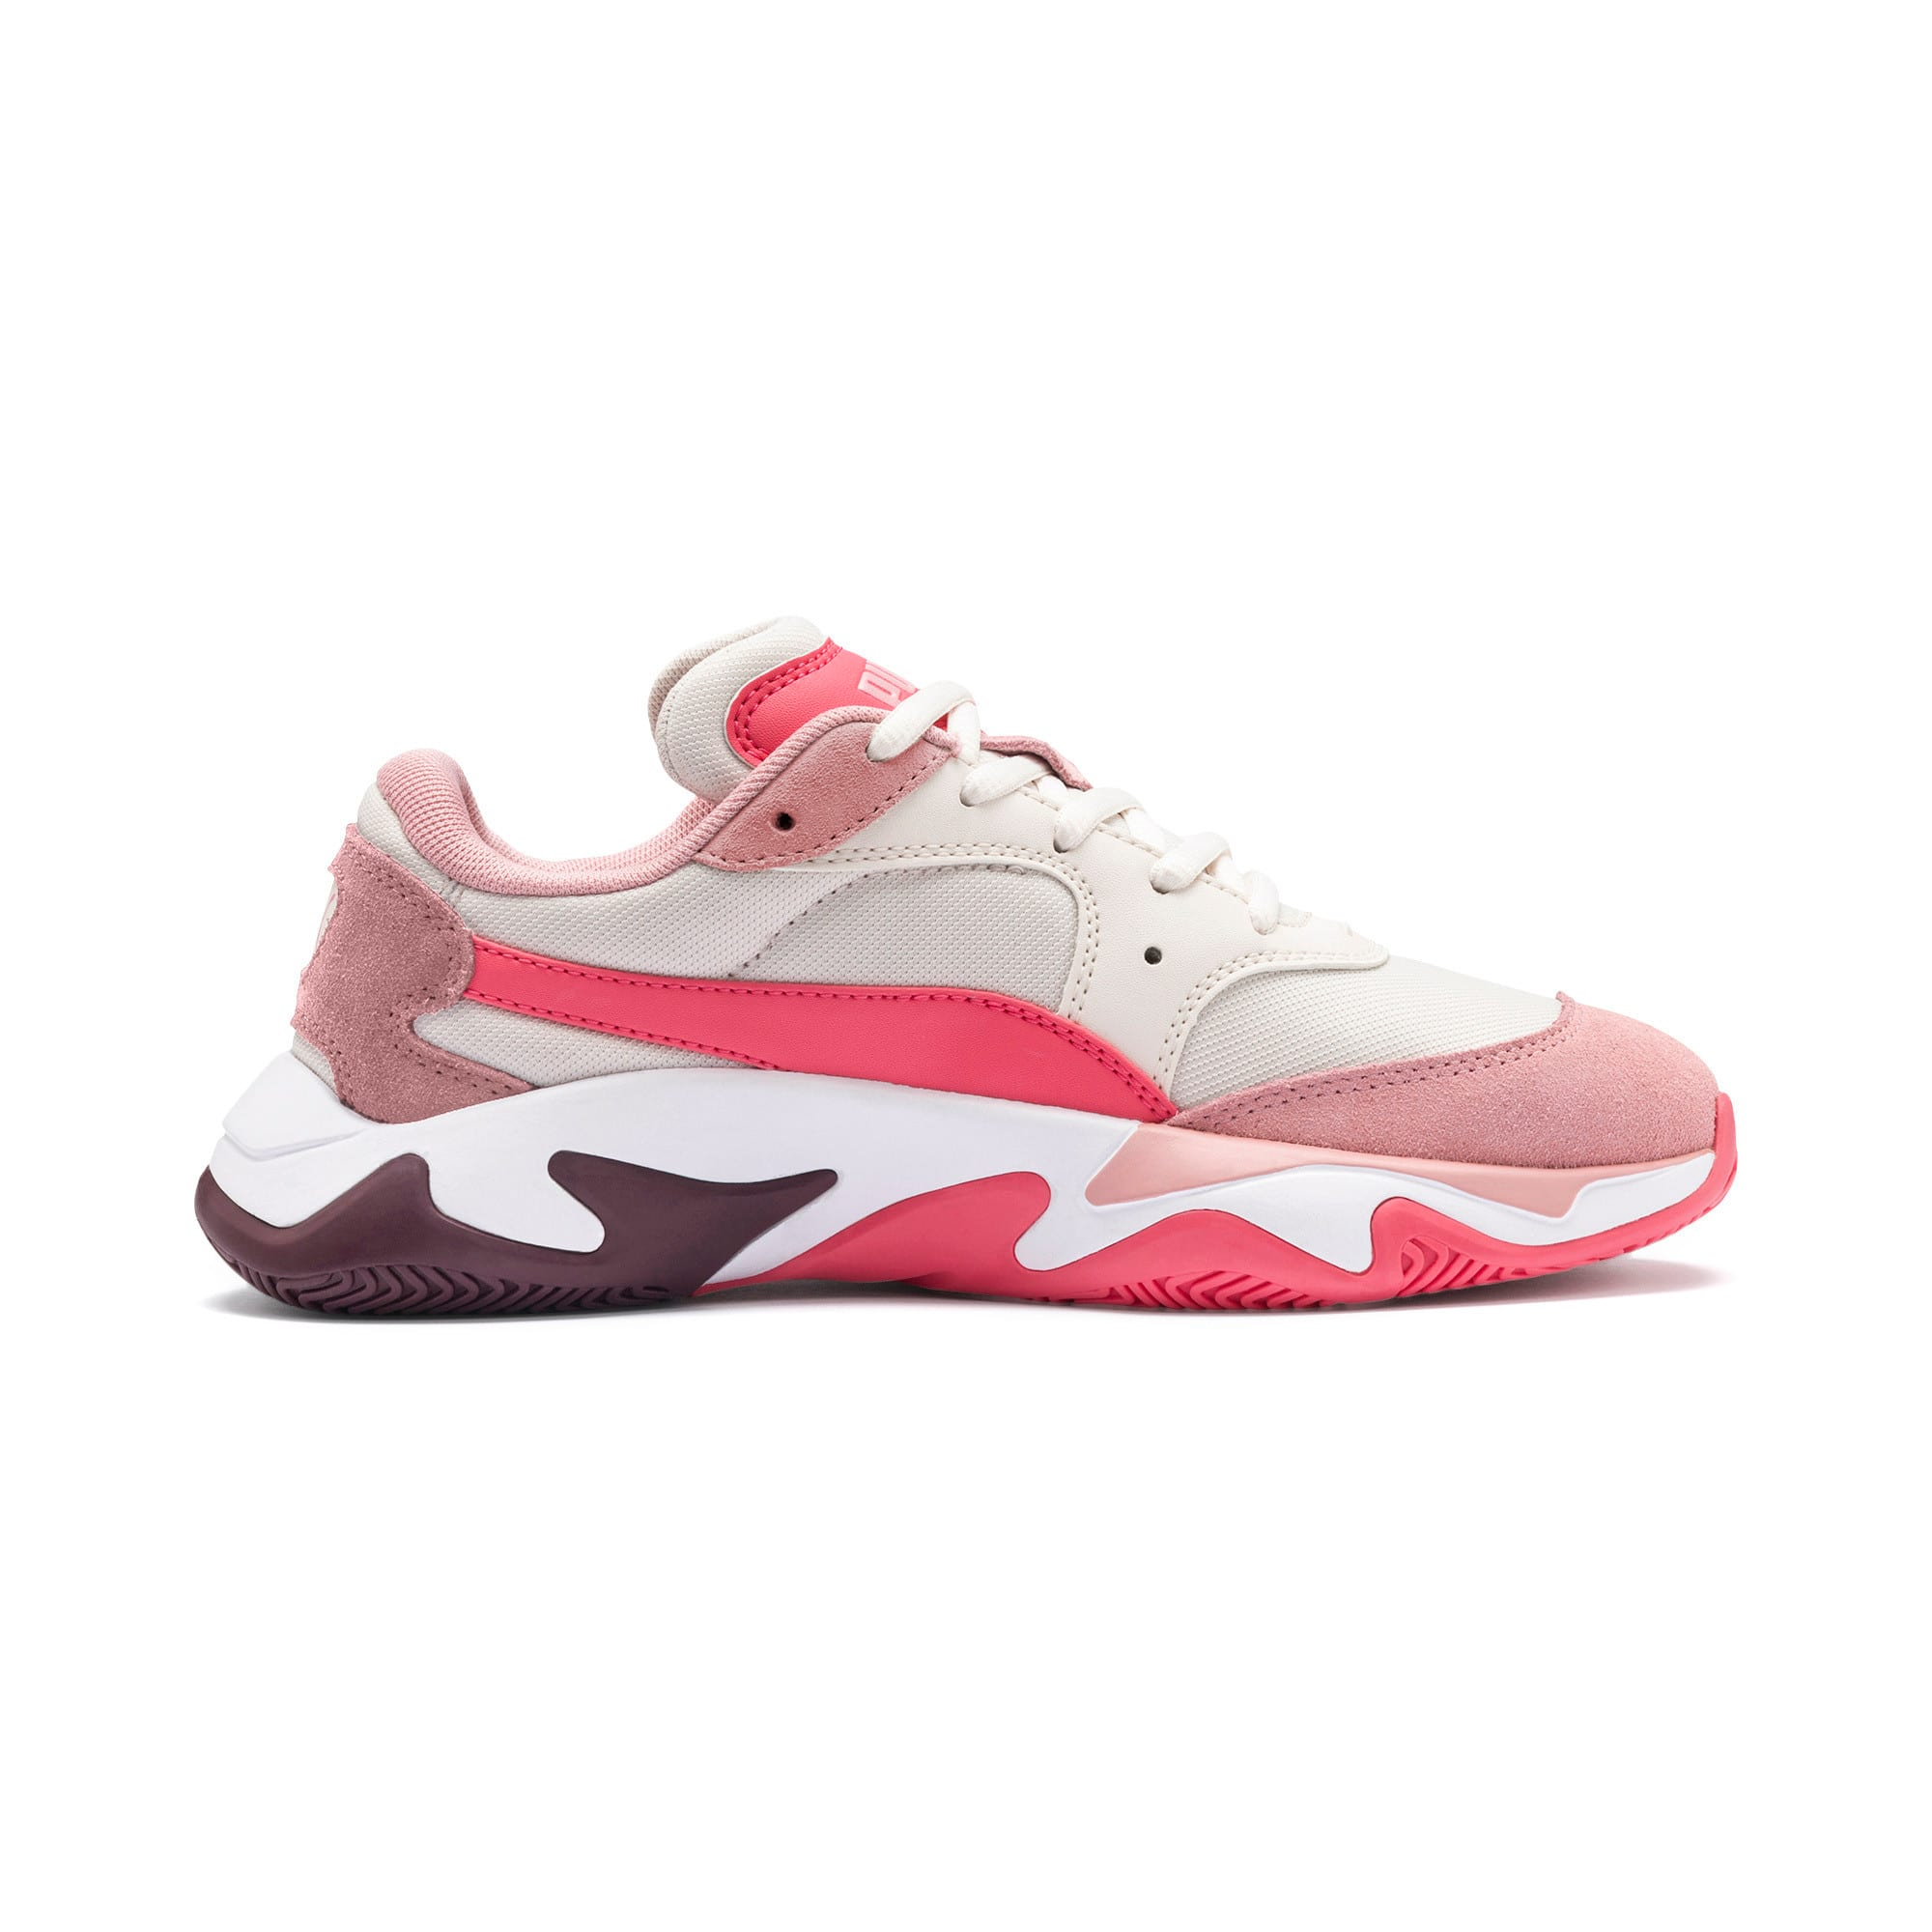 Anteprima 5 di Storm Ray Youth Trainers, Bridal Rose-Pastel Parchment, medio